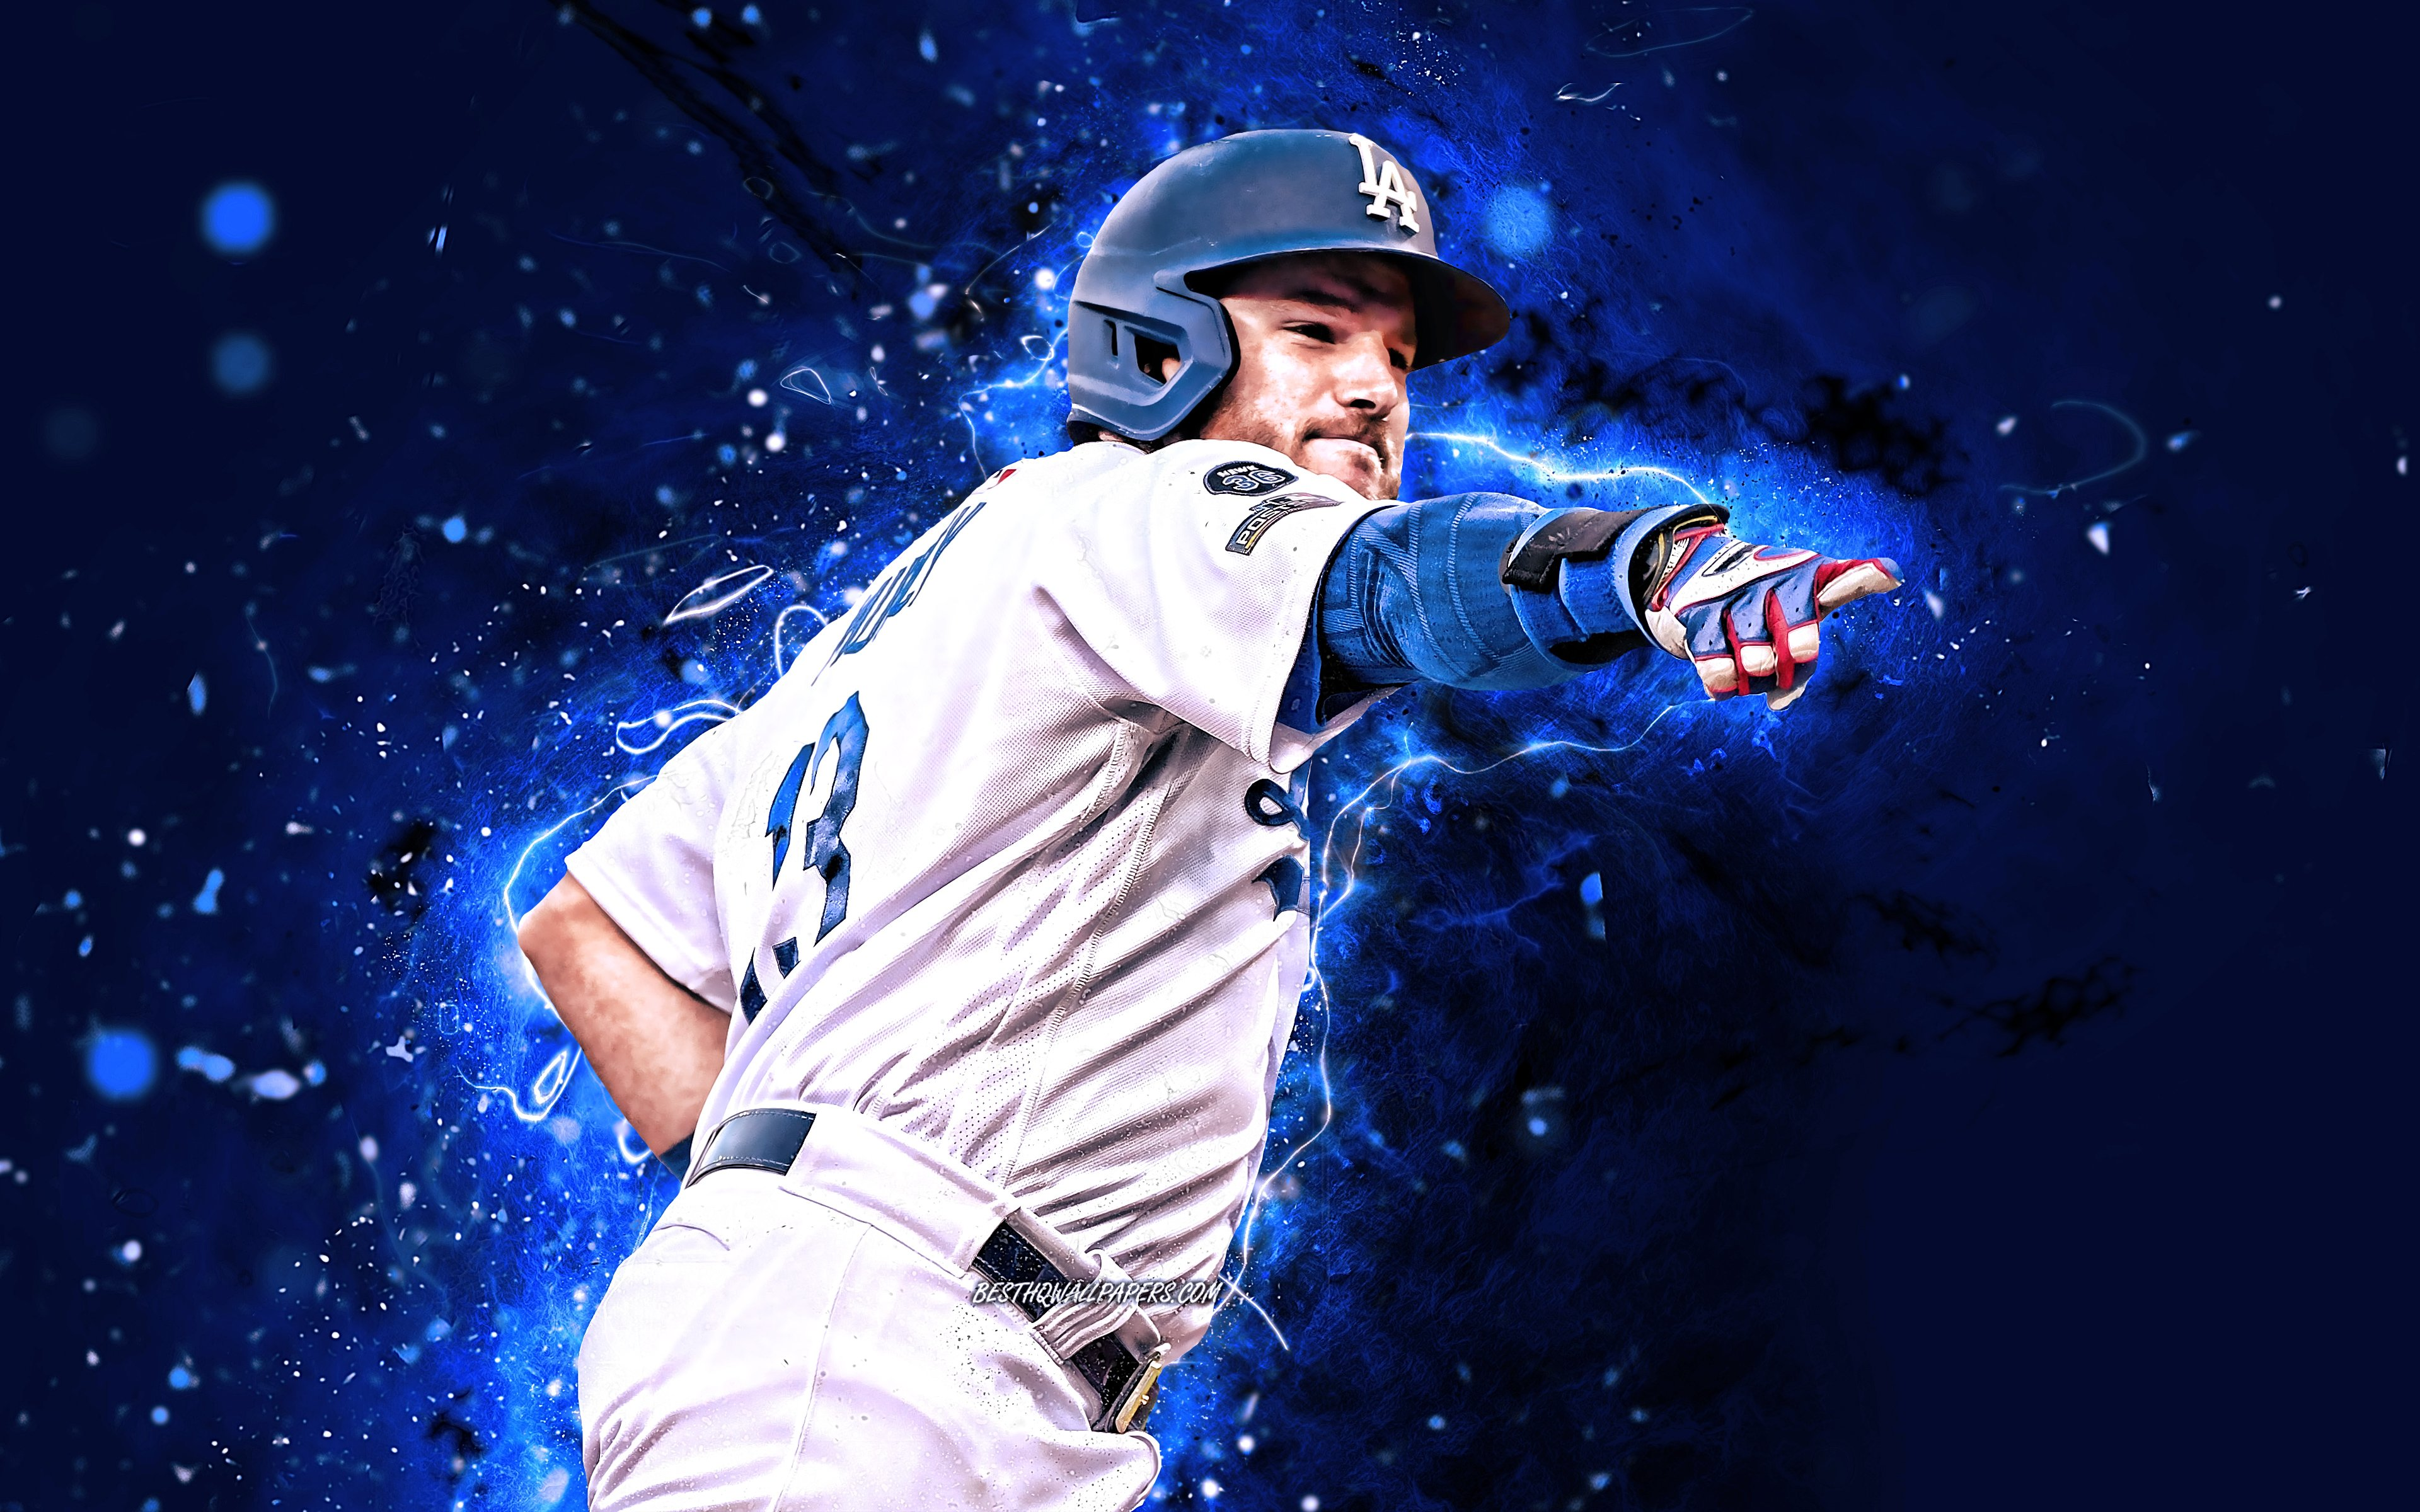 Download wallpapers Max Muncy 4k MLB Los Angeles Dodgers 3840x2400